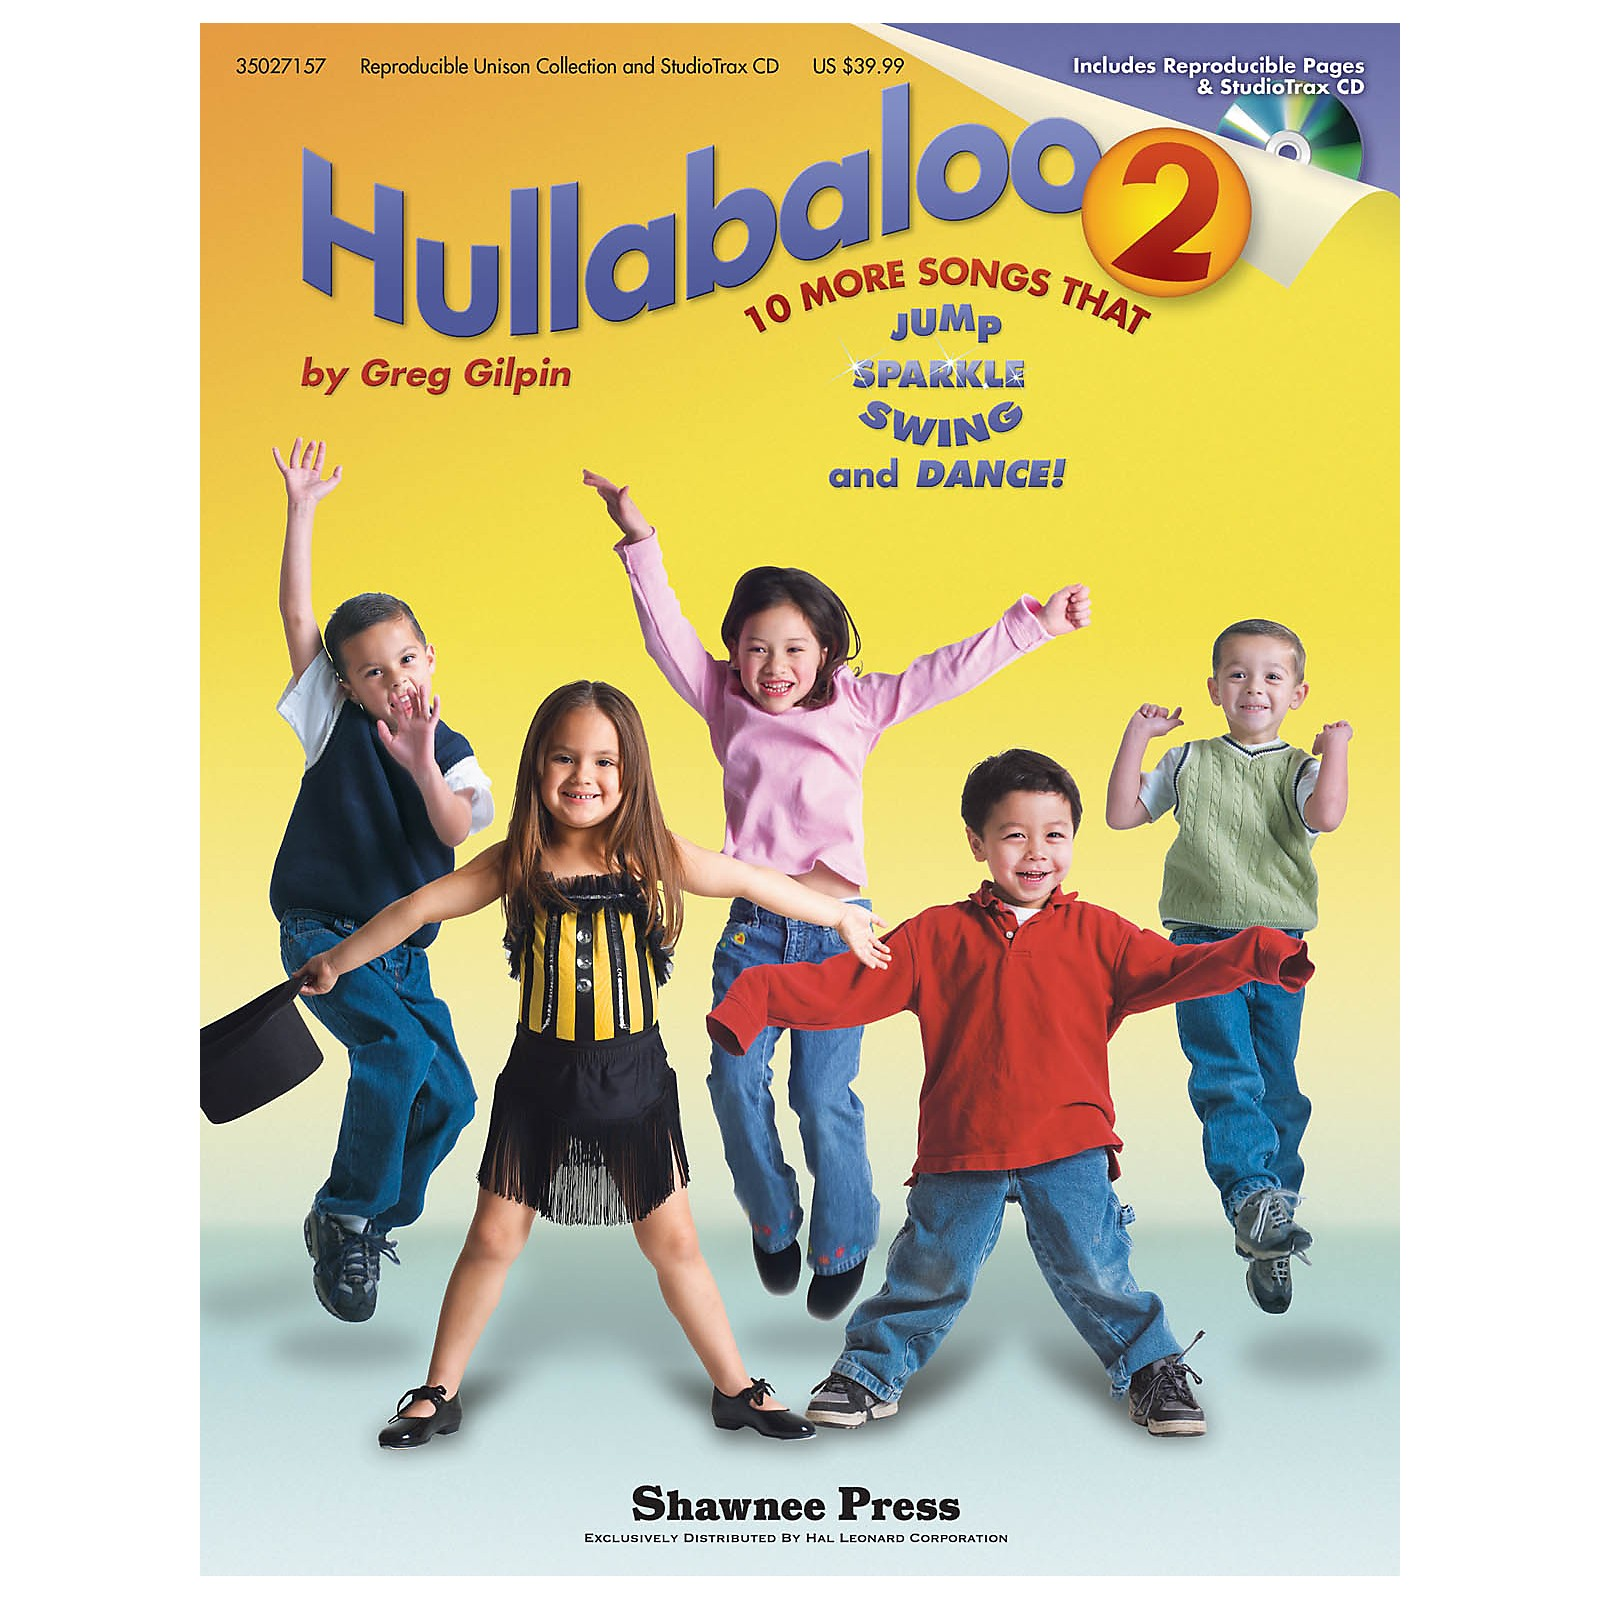 Shawnee Press Hullabaloo 2 (10 More Songs that Jump, Sparkle, Swing, and Dance!) CLASSRM KIT Composed by Greg Gilpin